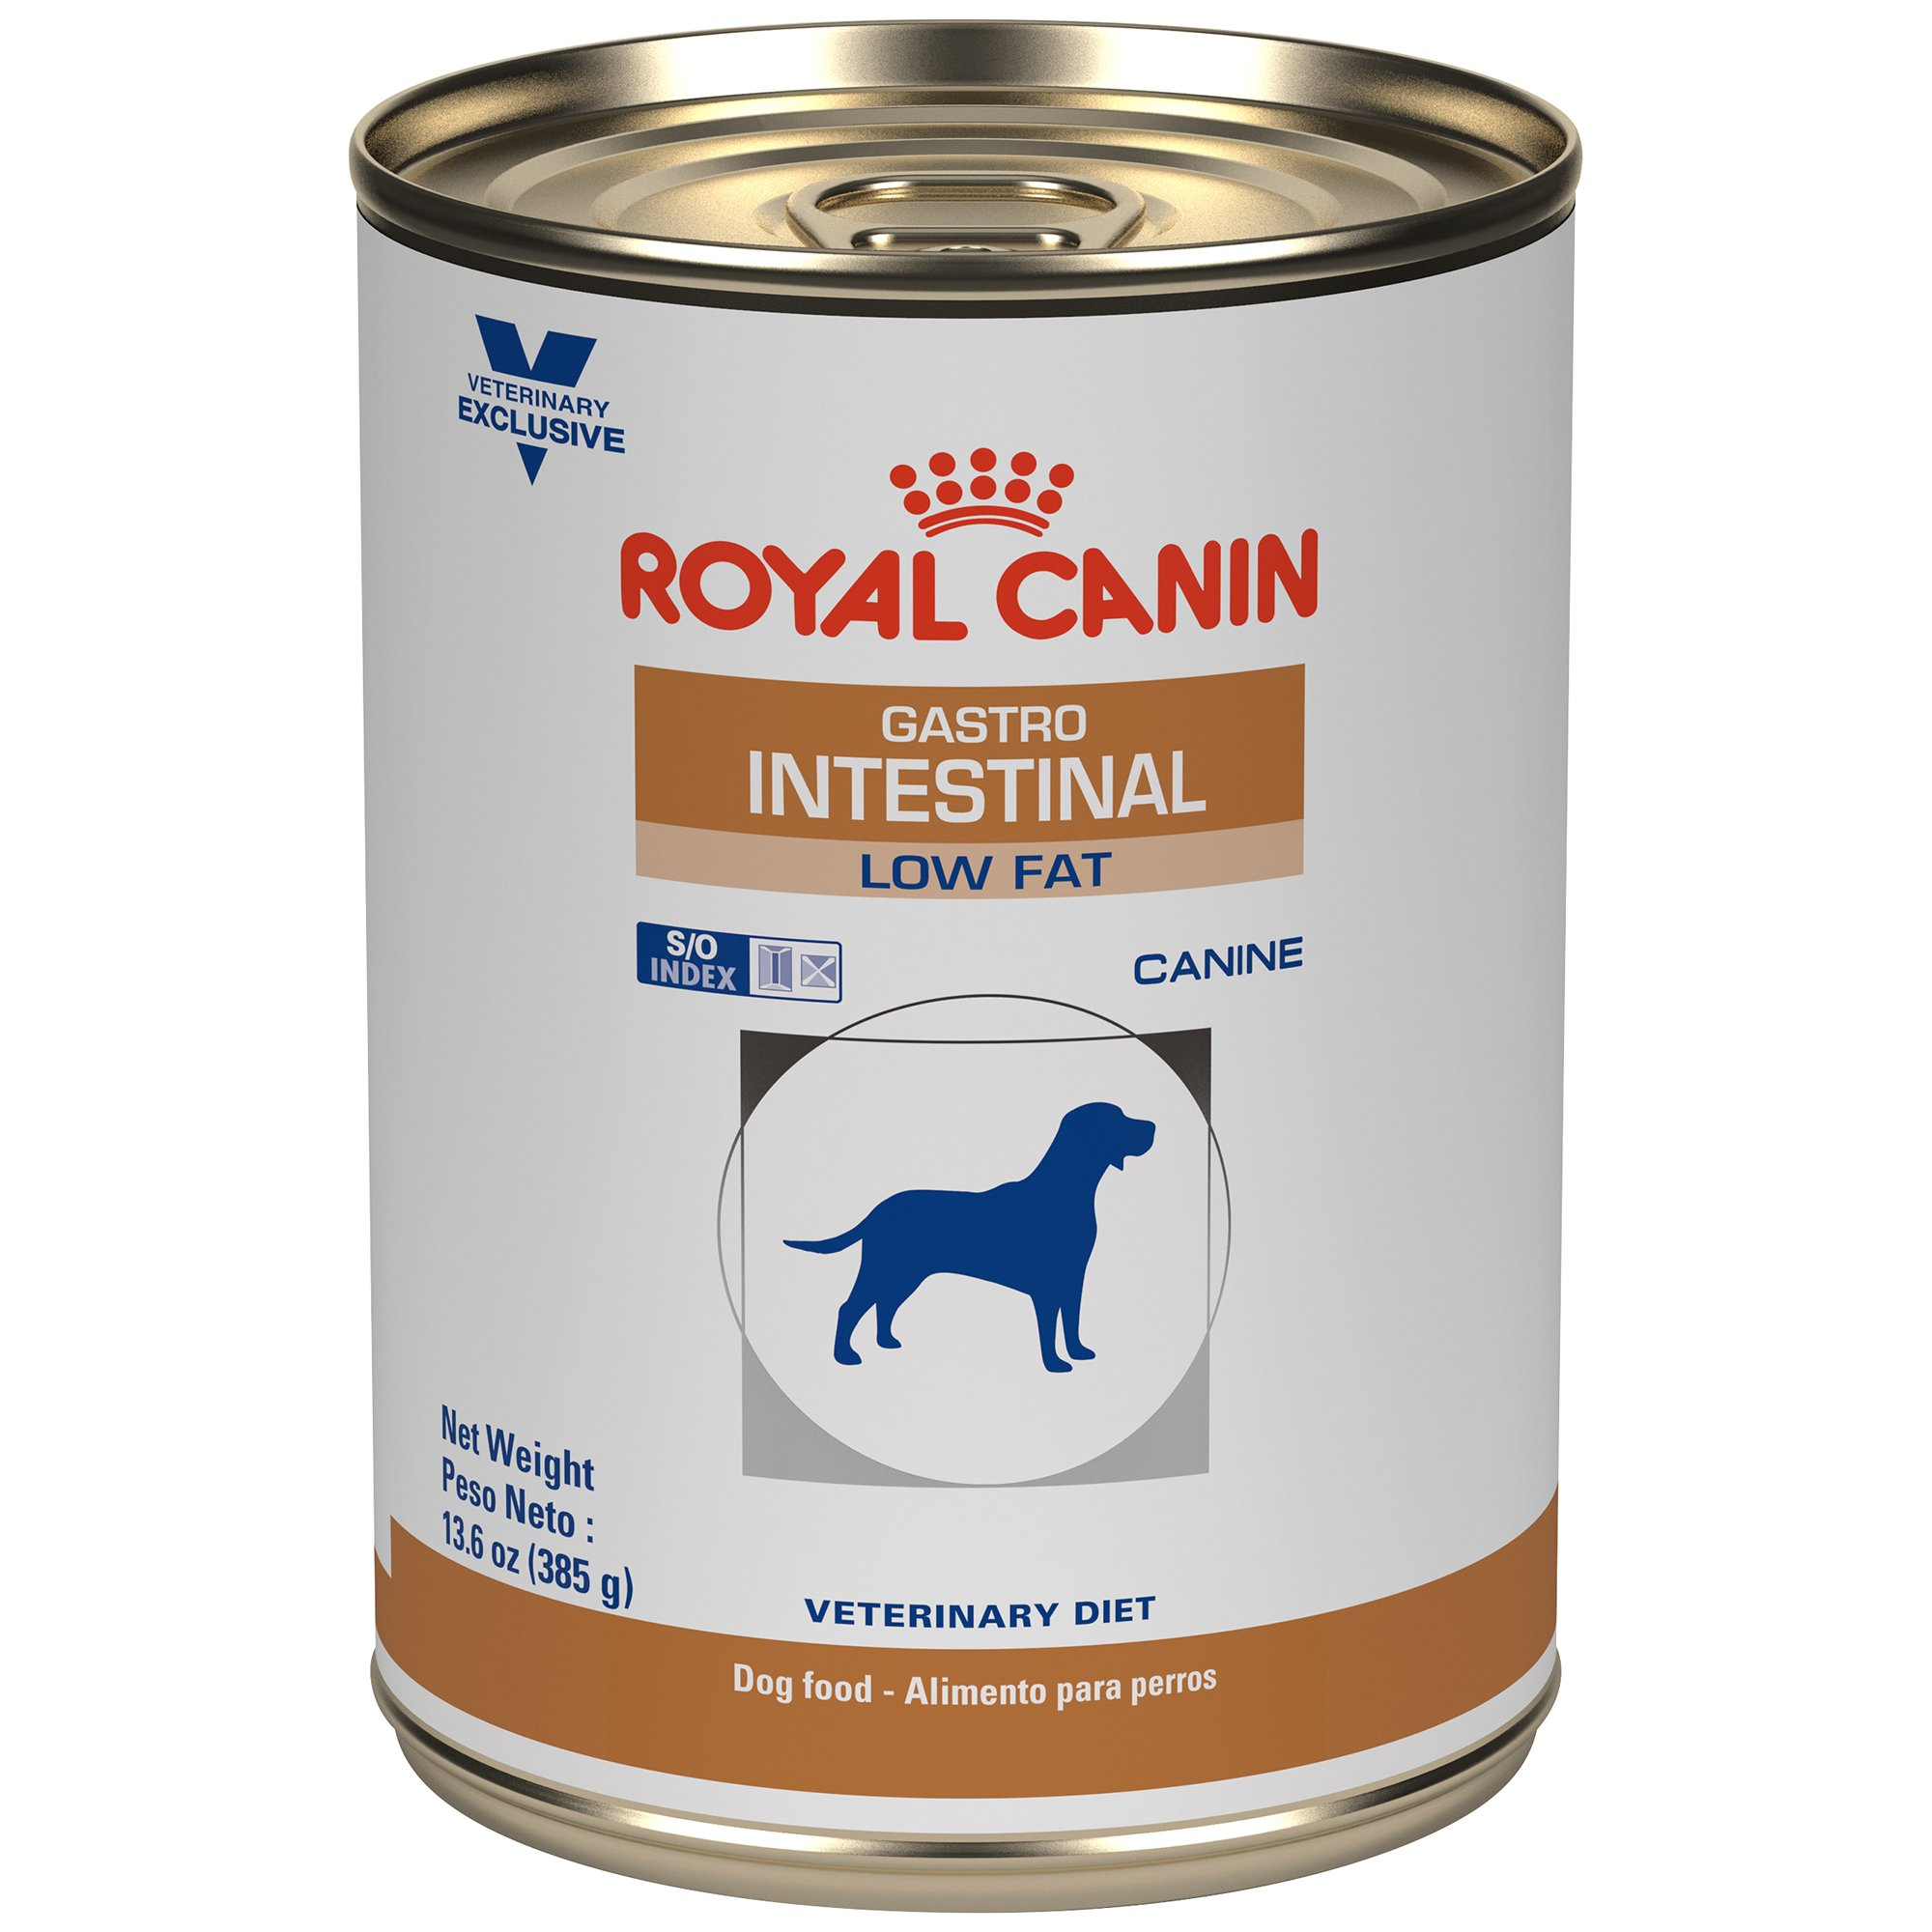 Royal Canin Gastrointestinal Low Fat Wet Food